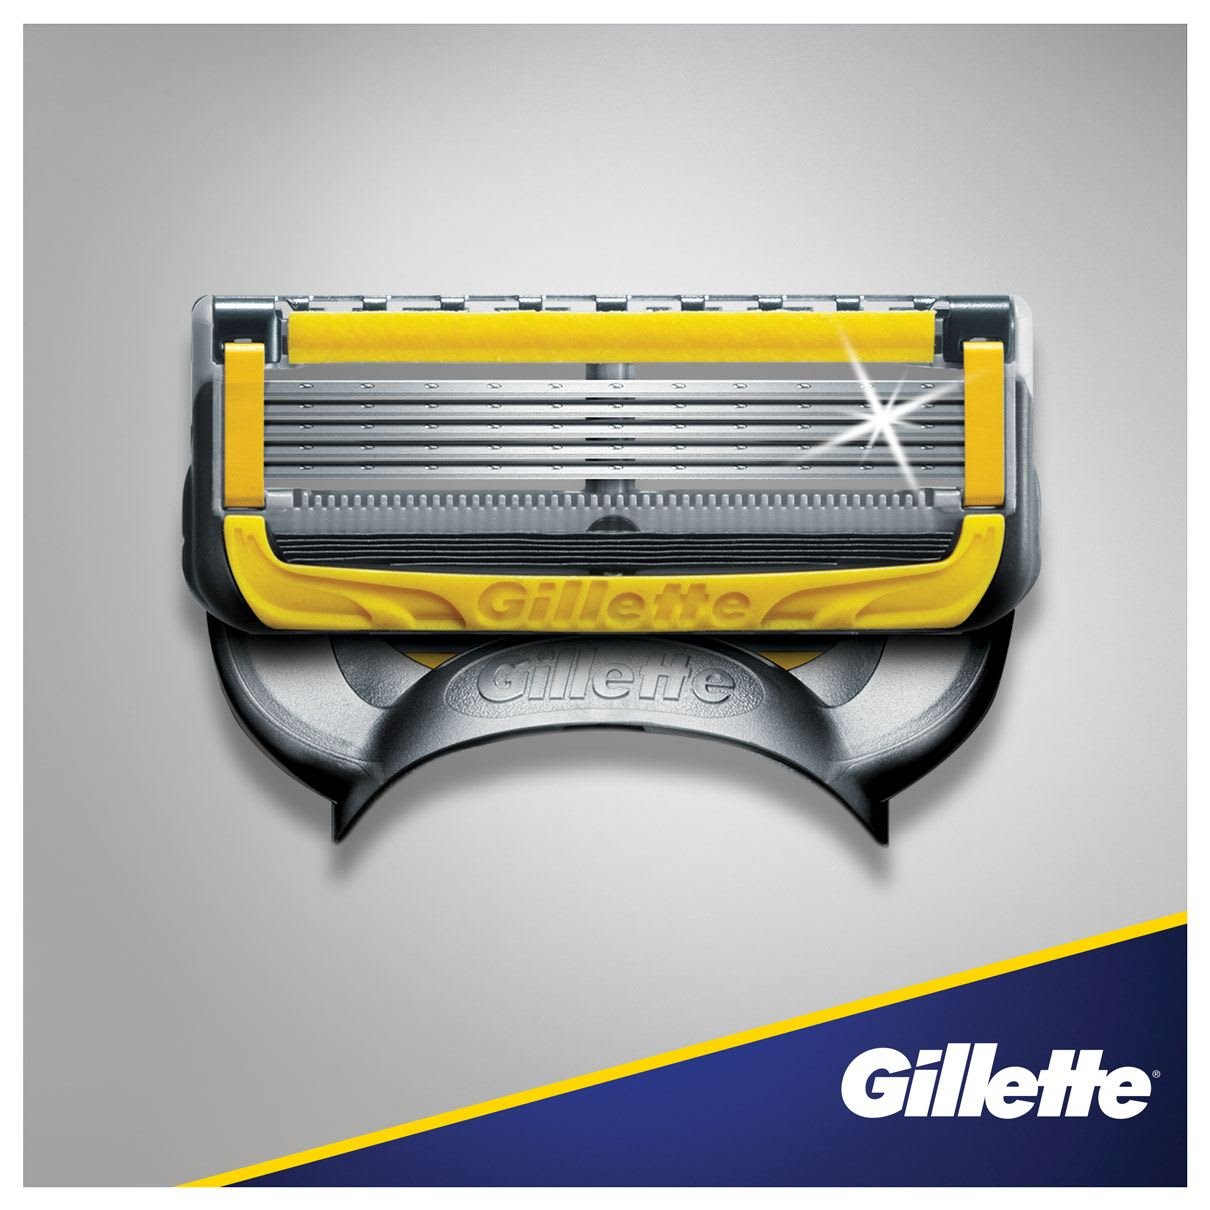 Gillette Fusion5 ProShield Ανταλλακτικά